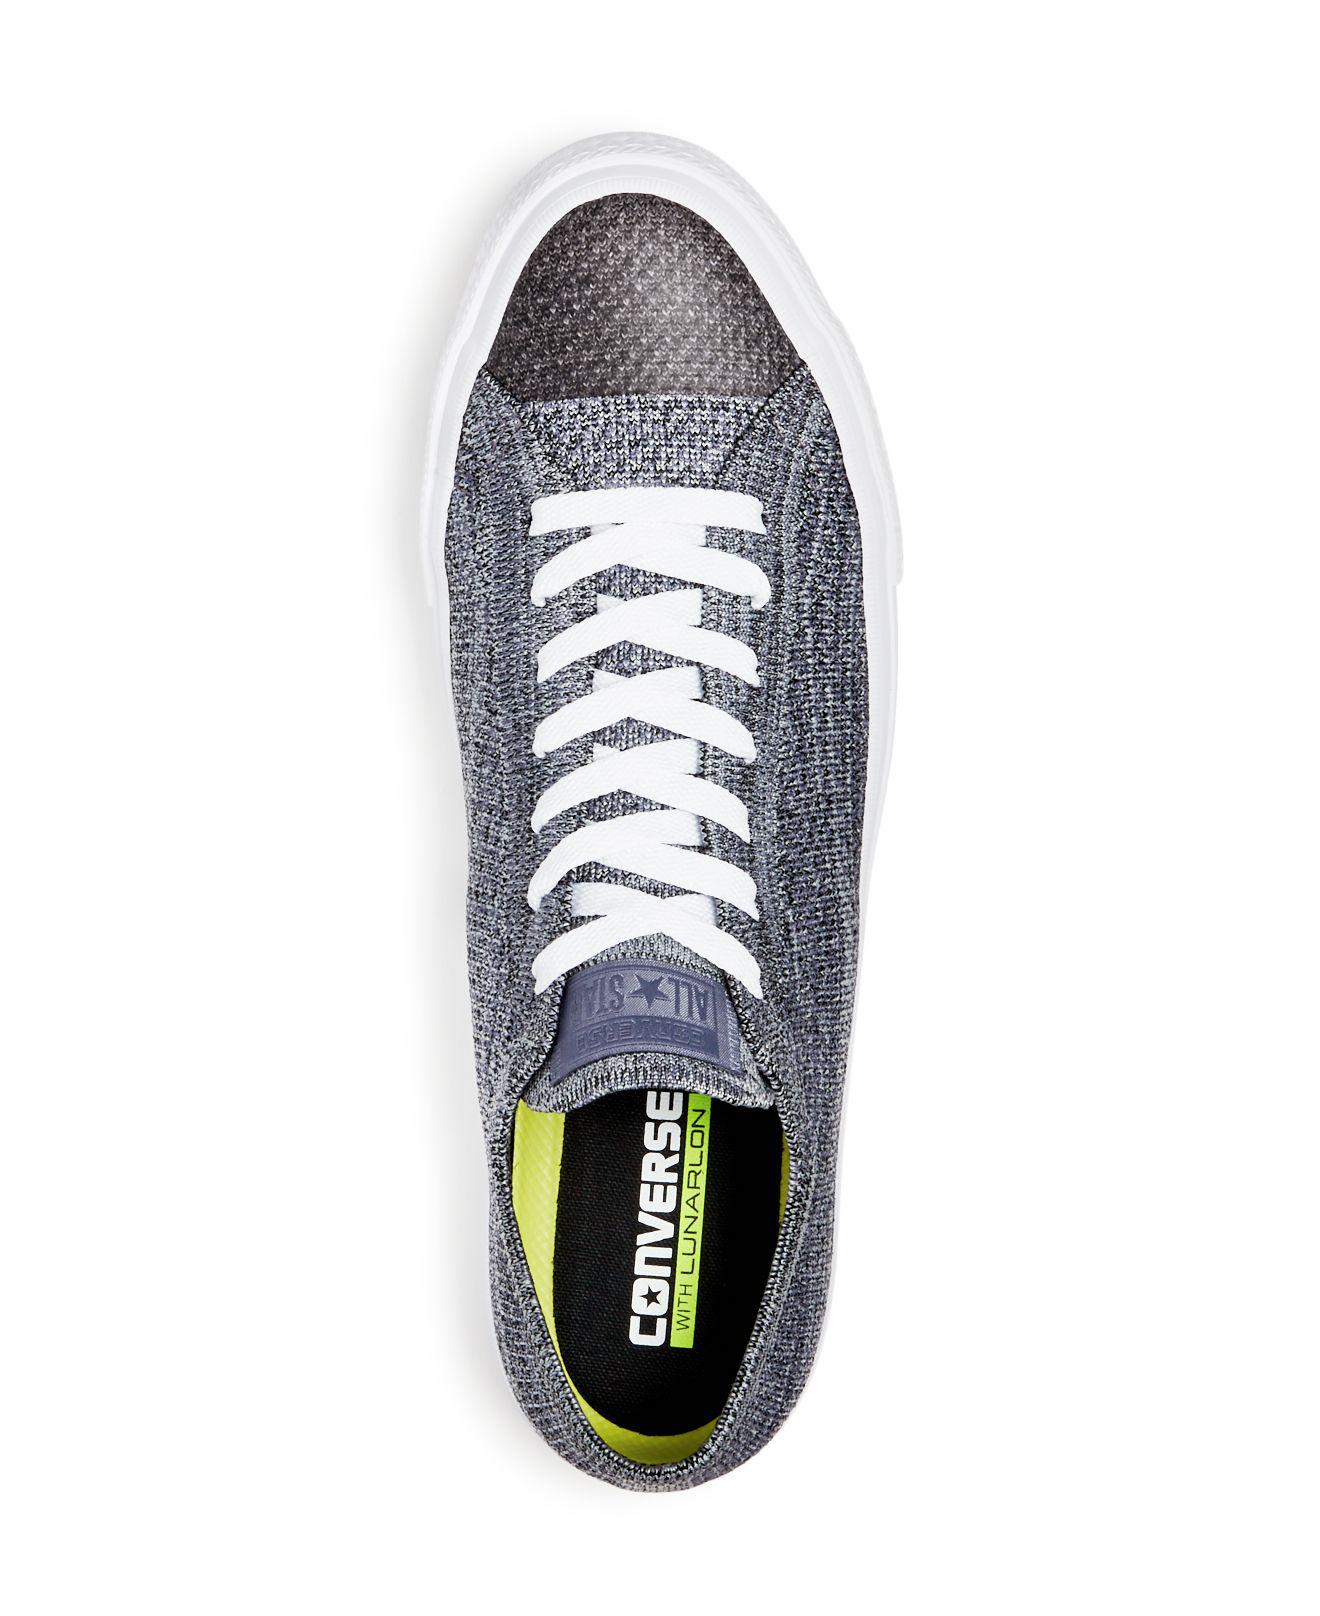 fd6c0292c96c Converse - Black X Nike Men s Chuck Taylor All Star Flyknit Lace Up  Sneakers for Men